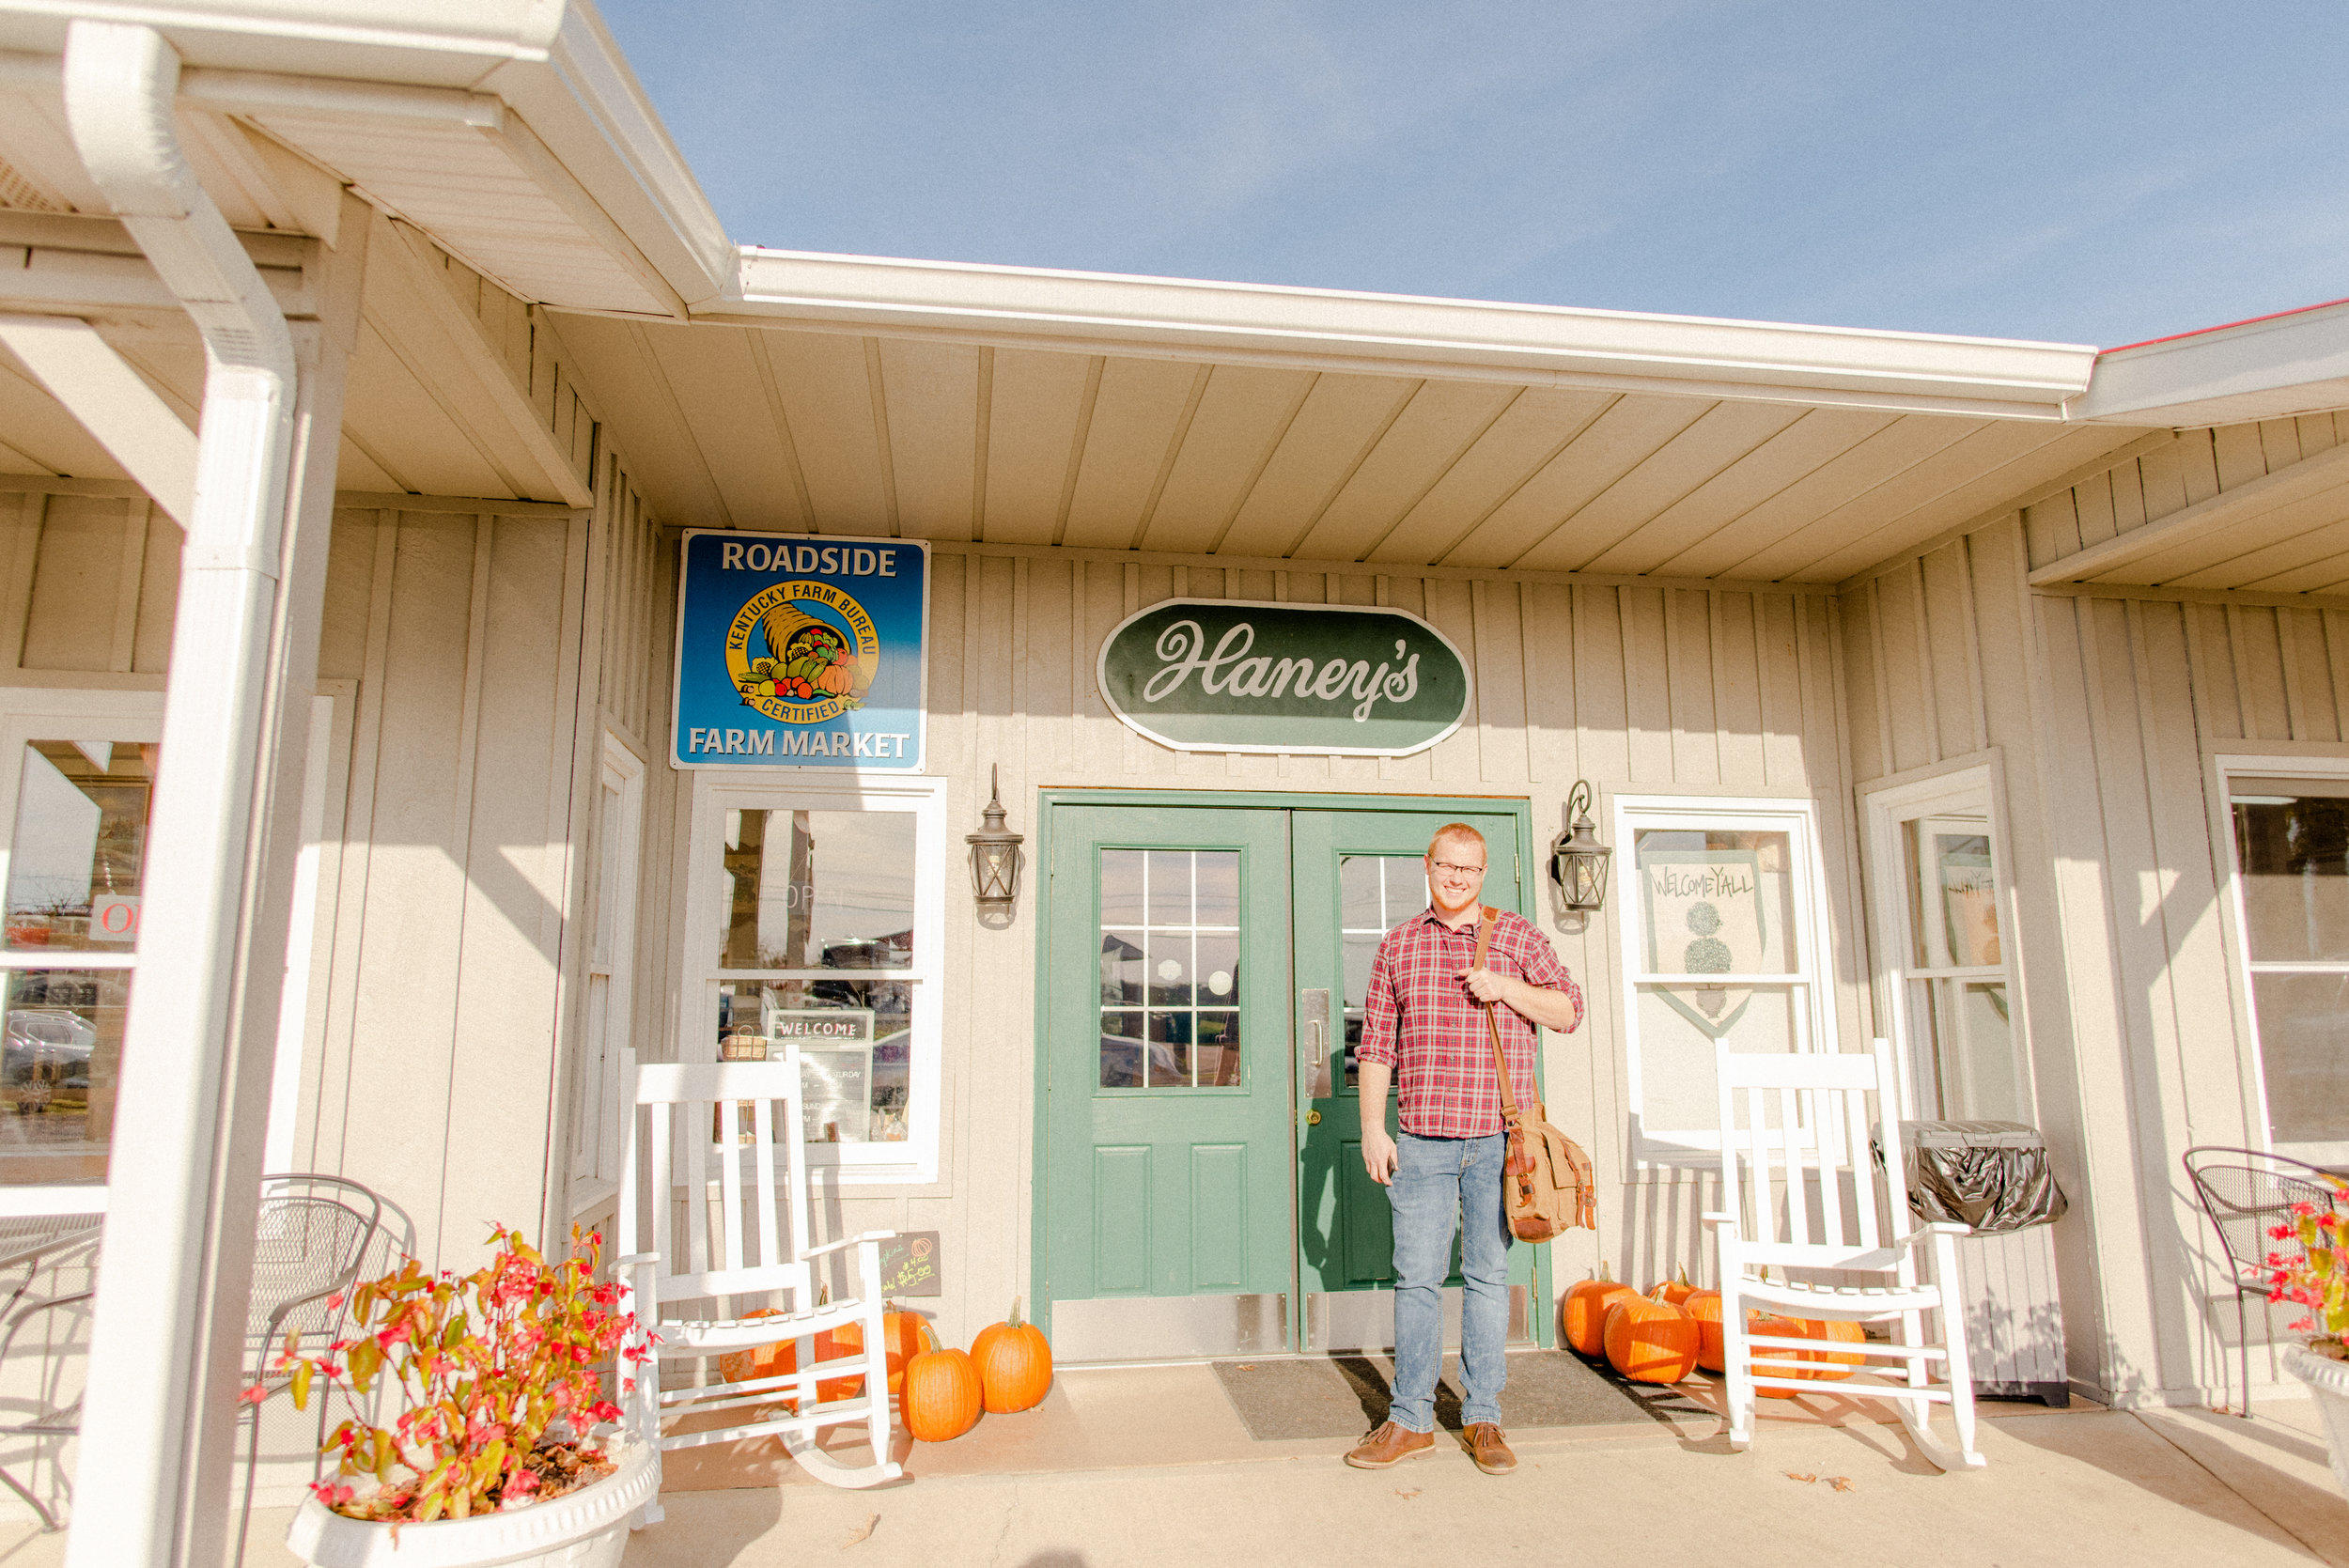 Here, we were at one of our favorite places: Haney's Appledale Farm!!! I had just shot two fall family sessions in the orchard, and once we were finished, we headed inside for apple pie and frozen apple-cider slushies. Just thinking about it makes my stomach growl!